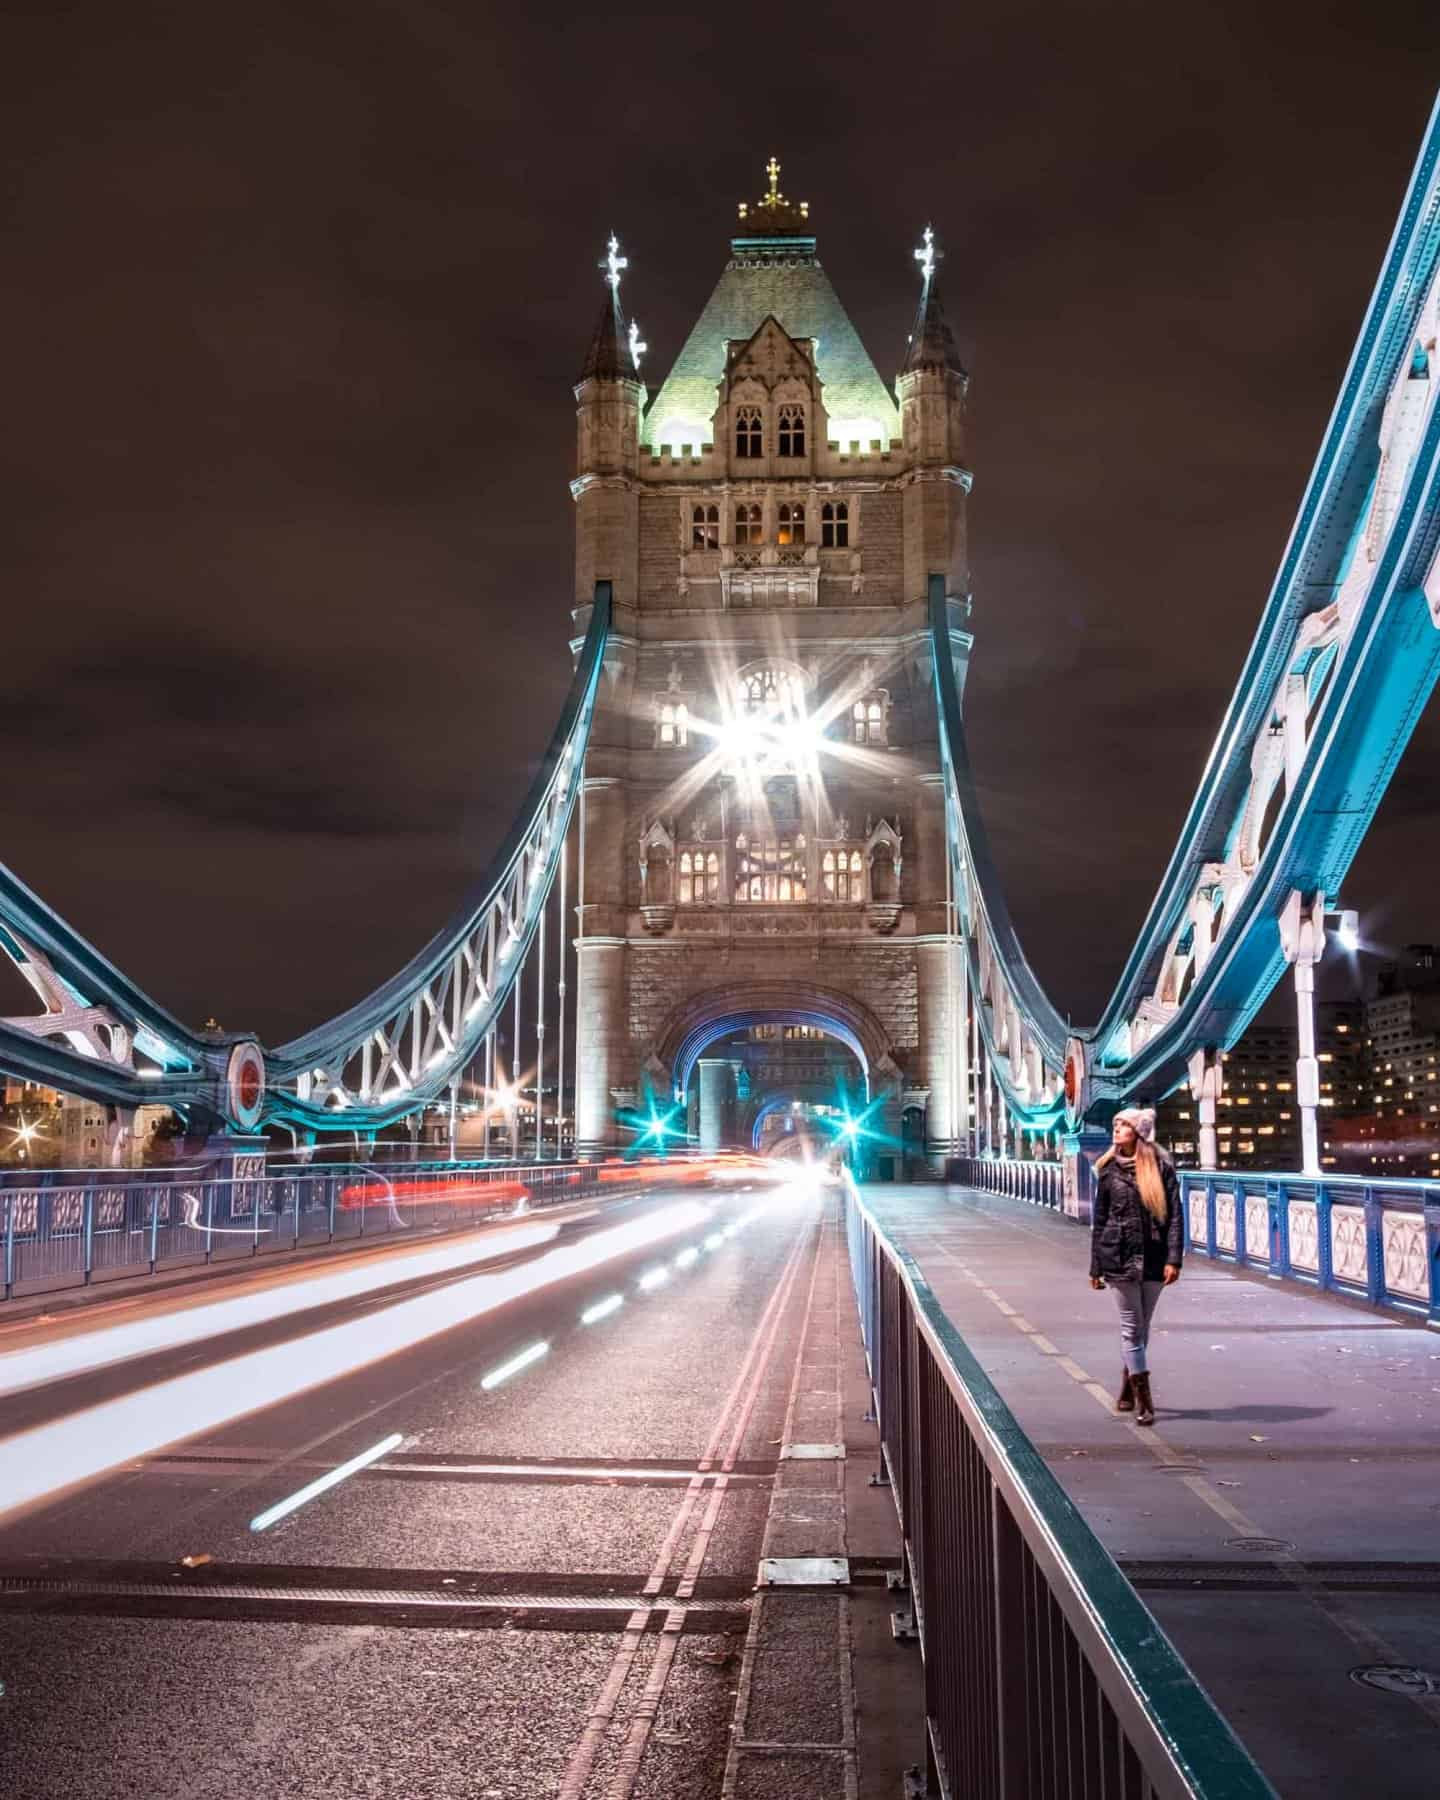 A long exposure photo of Tower Bridge at night